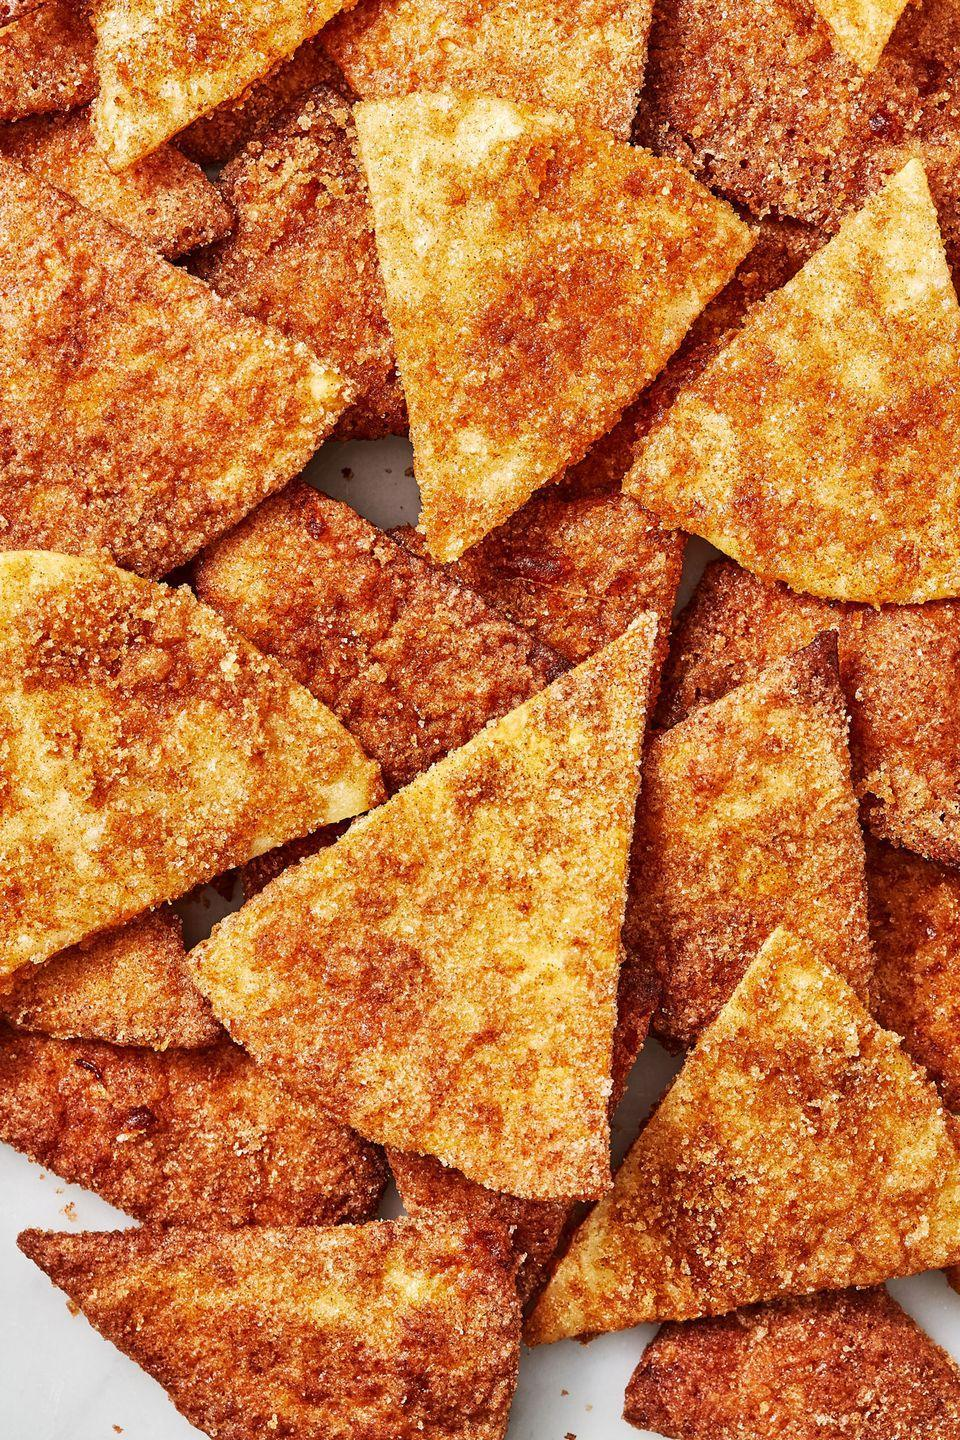 "<p>Make them in the air fryer for a different kind of crunch,</p><p>Get the recipe from <a href=""https://www.delish.com/cooking/recipe-ideas/a28581106/churro-chips-recipe/"" rel=""nofollow noopener"" target=""_blank"" data-ylk=""slk:Delish"" class=""link rapid-noclick-resp"">Delish</a>.</p>"